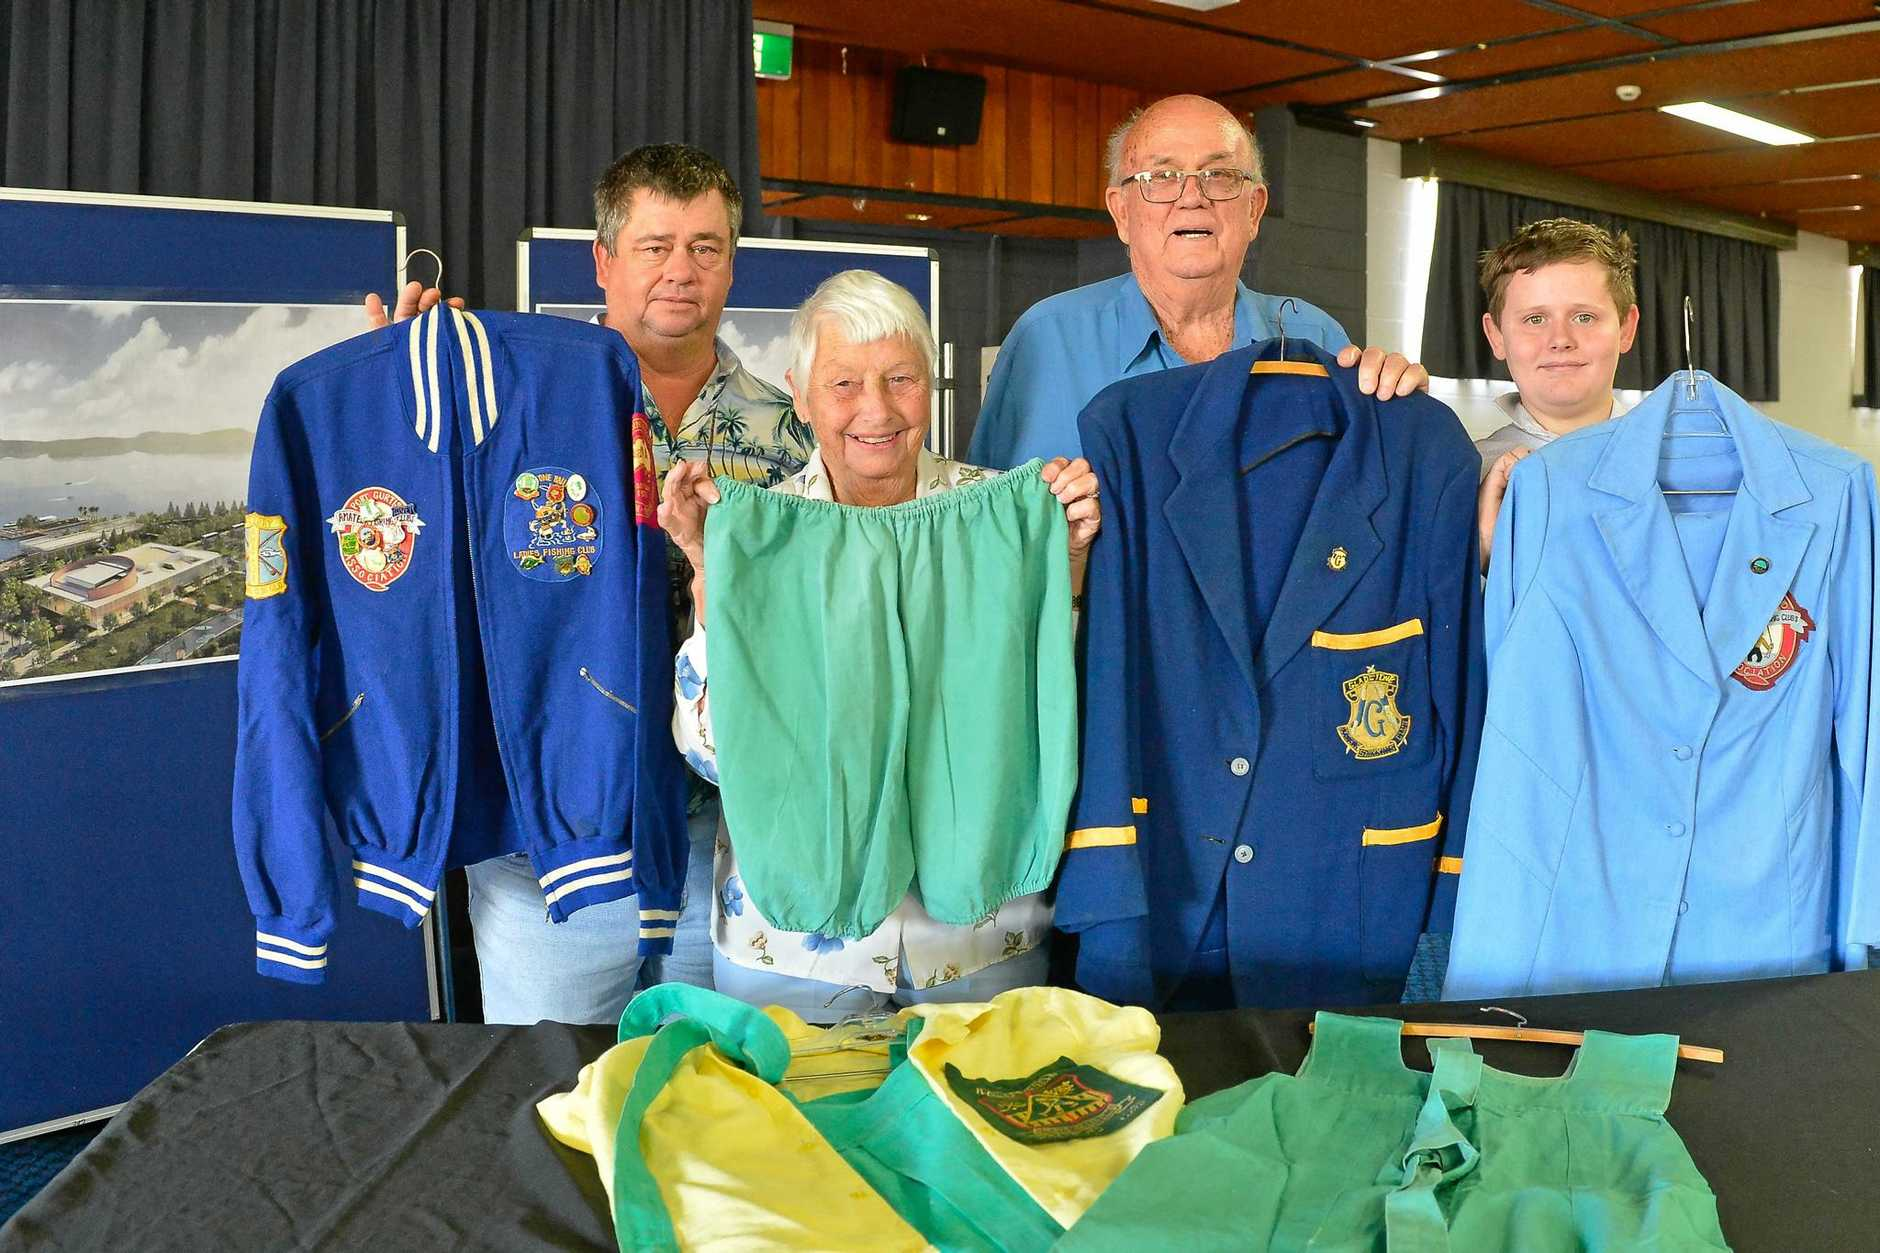 Patsy Lee's relatives John, Lorraine, Ron and Thomas Haslet with some of her old uniforms including the bloomers worn as goalie in hockey.